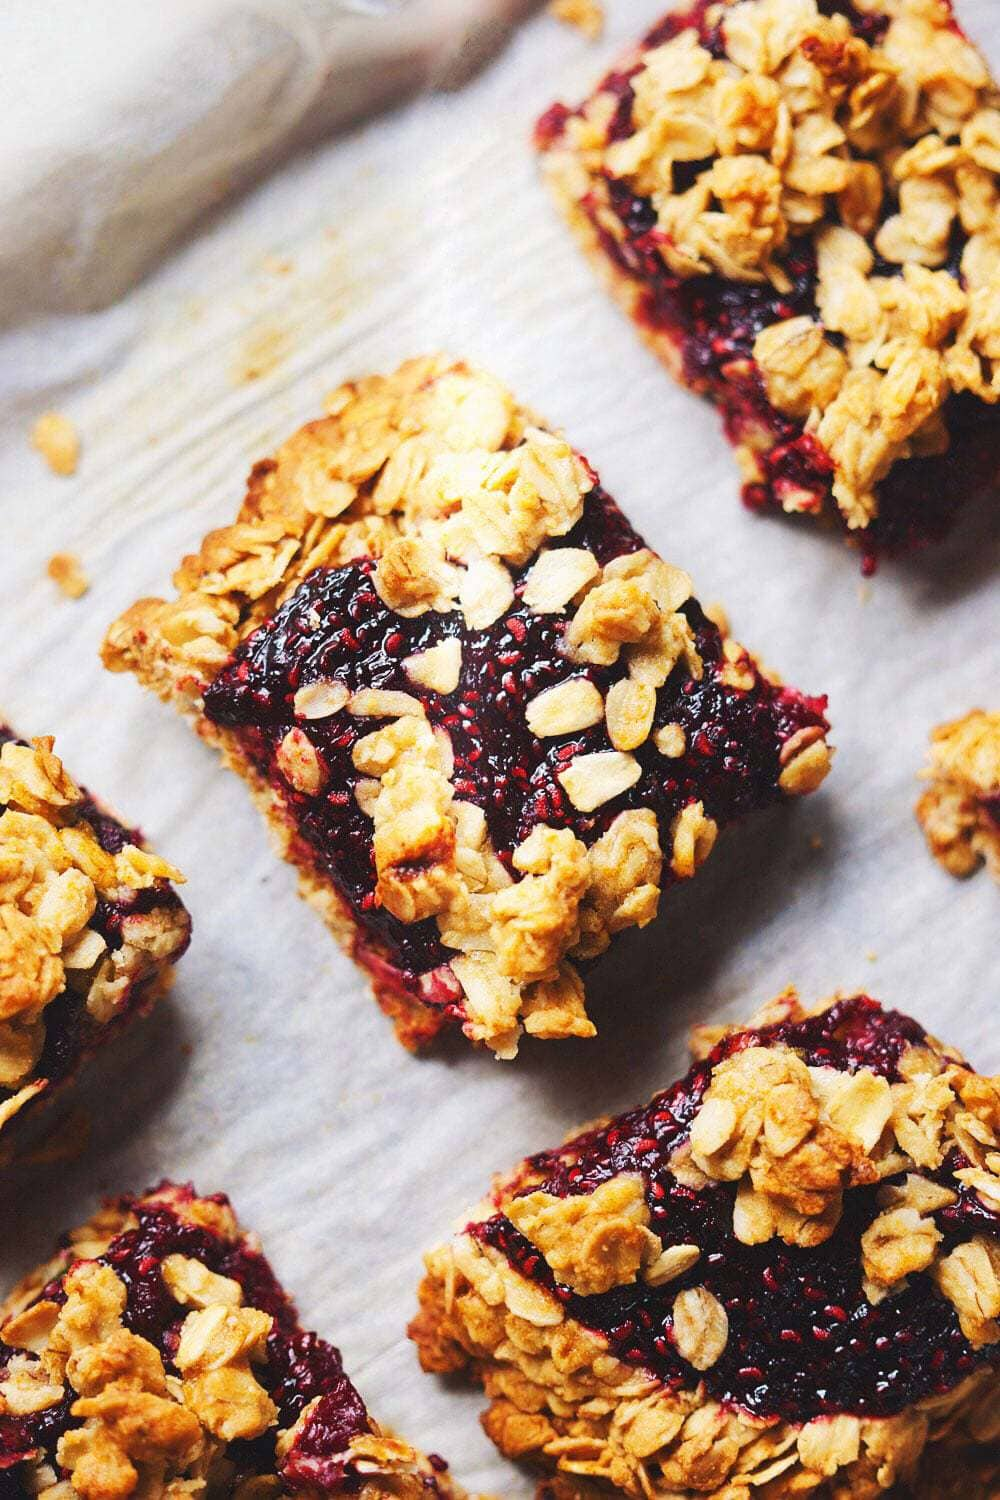 Healthy Raspberry Chia-Seed Oat Squares - A healthy, vibrant way to eat a guiltless dessert! Fresh raspberry chia seed jam with a wholesome oat crust. One of my FAVORITE desserts to make. SO YUMMY.